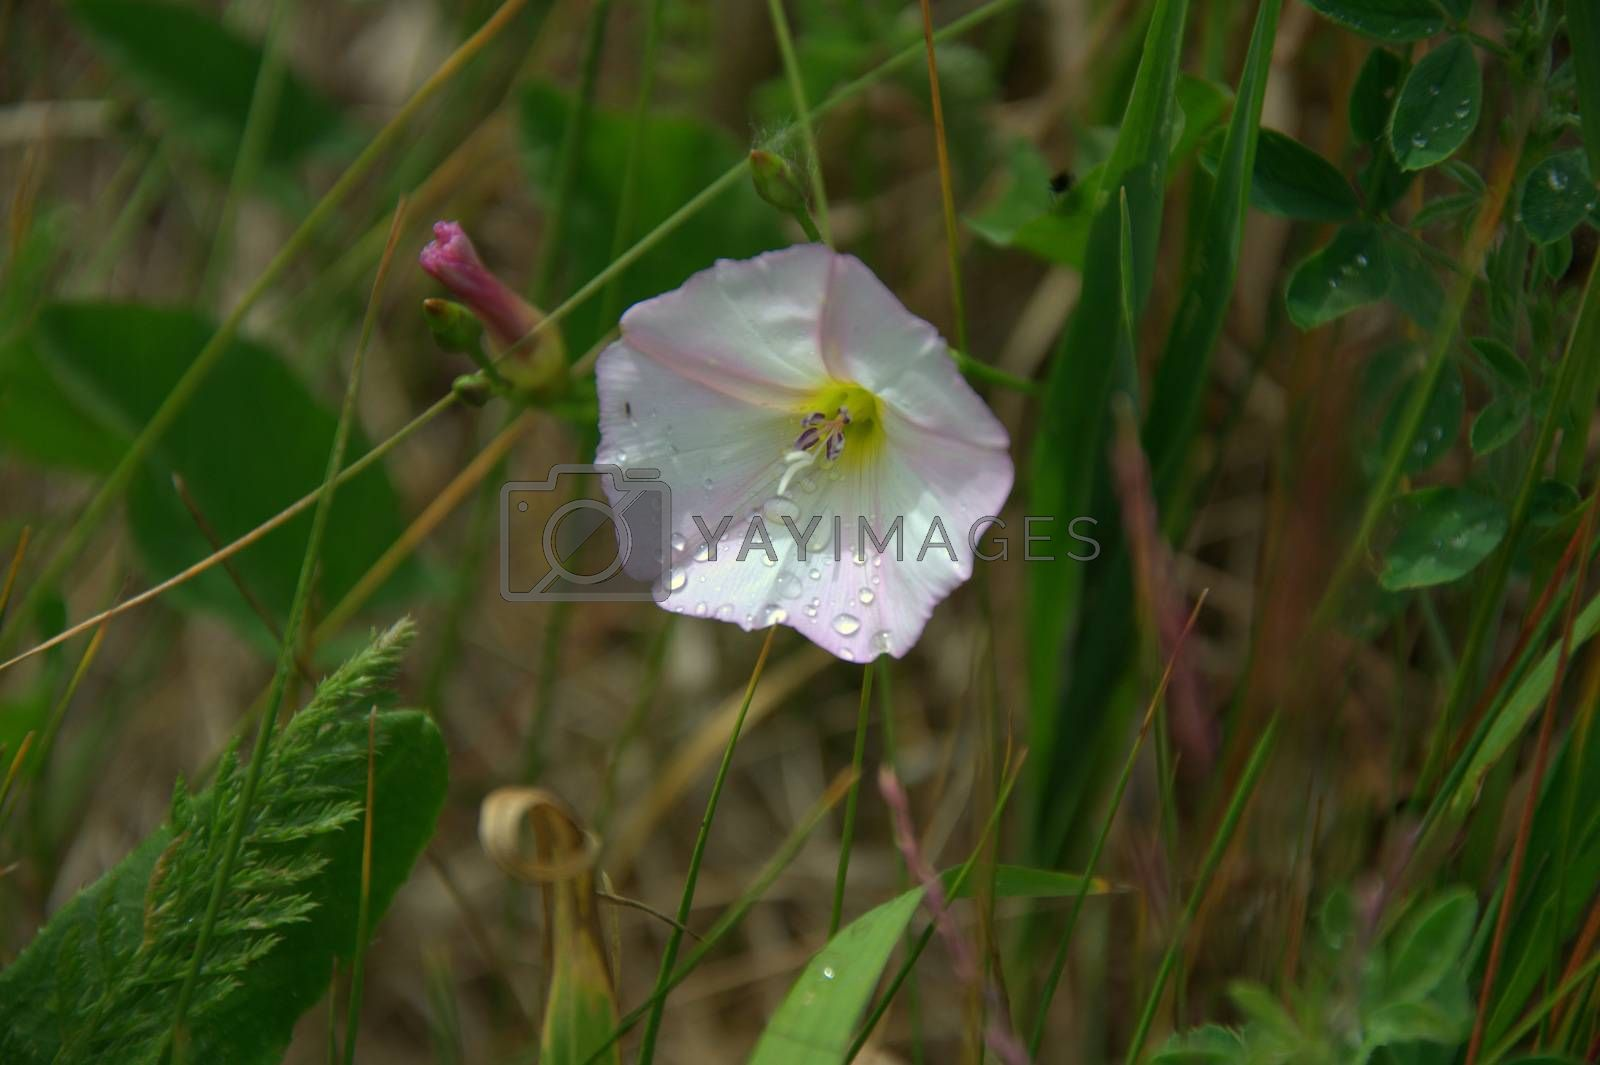 Beautiful wild flower of white color against the background of green meadow grass.